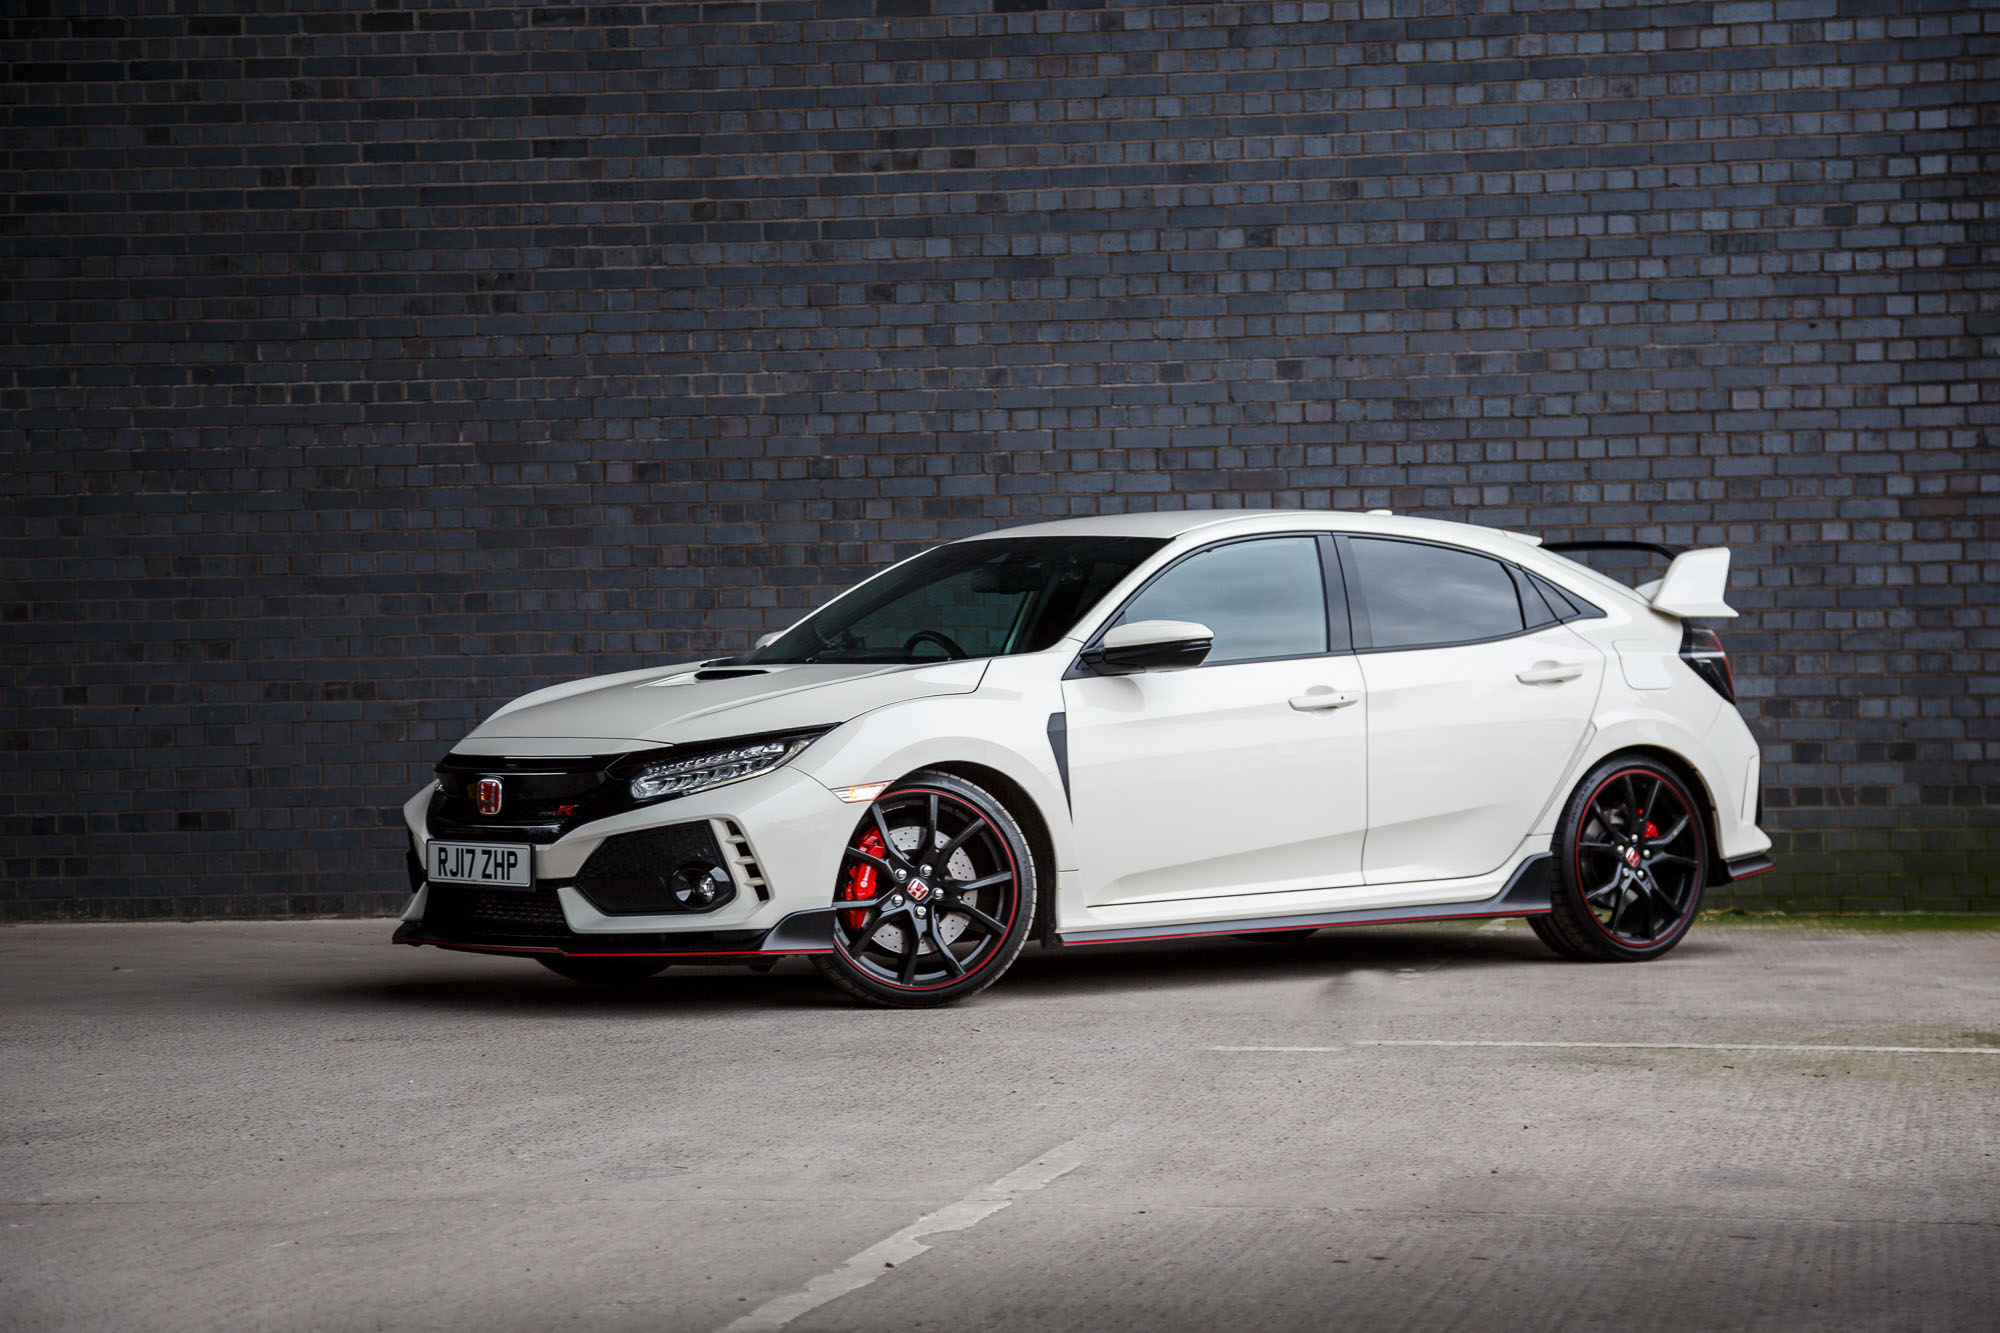 new honda civic type r fk8 everything you need to know. Black Bedroom Furniture Sets. Home Design Ideas